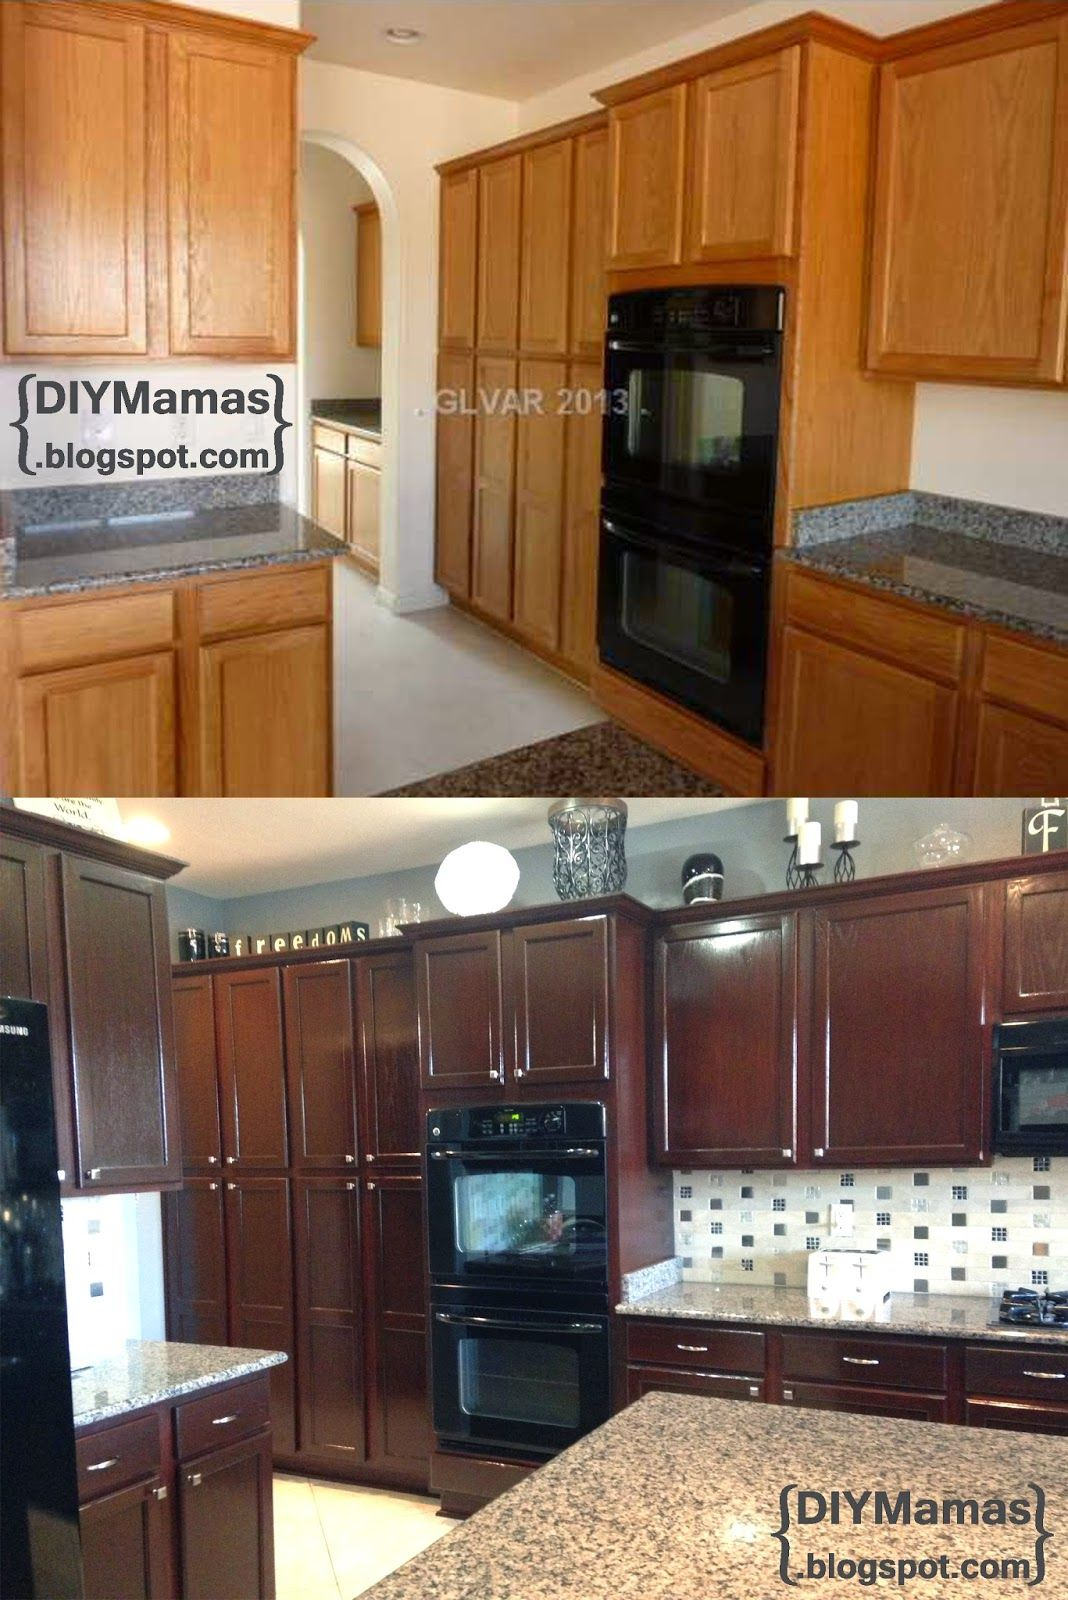 Diy Mamas Kitchen Makeover Gel Stain Backsplash